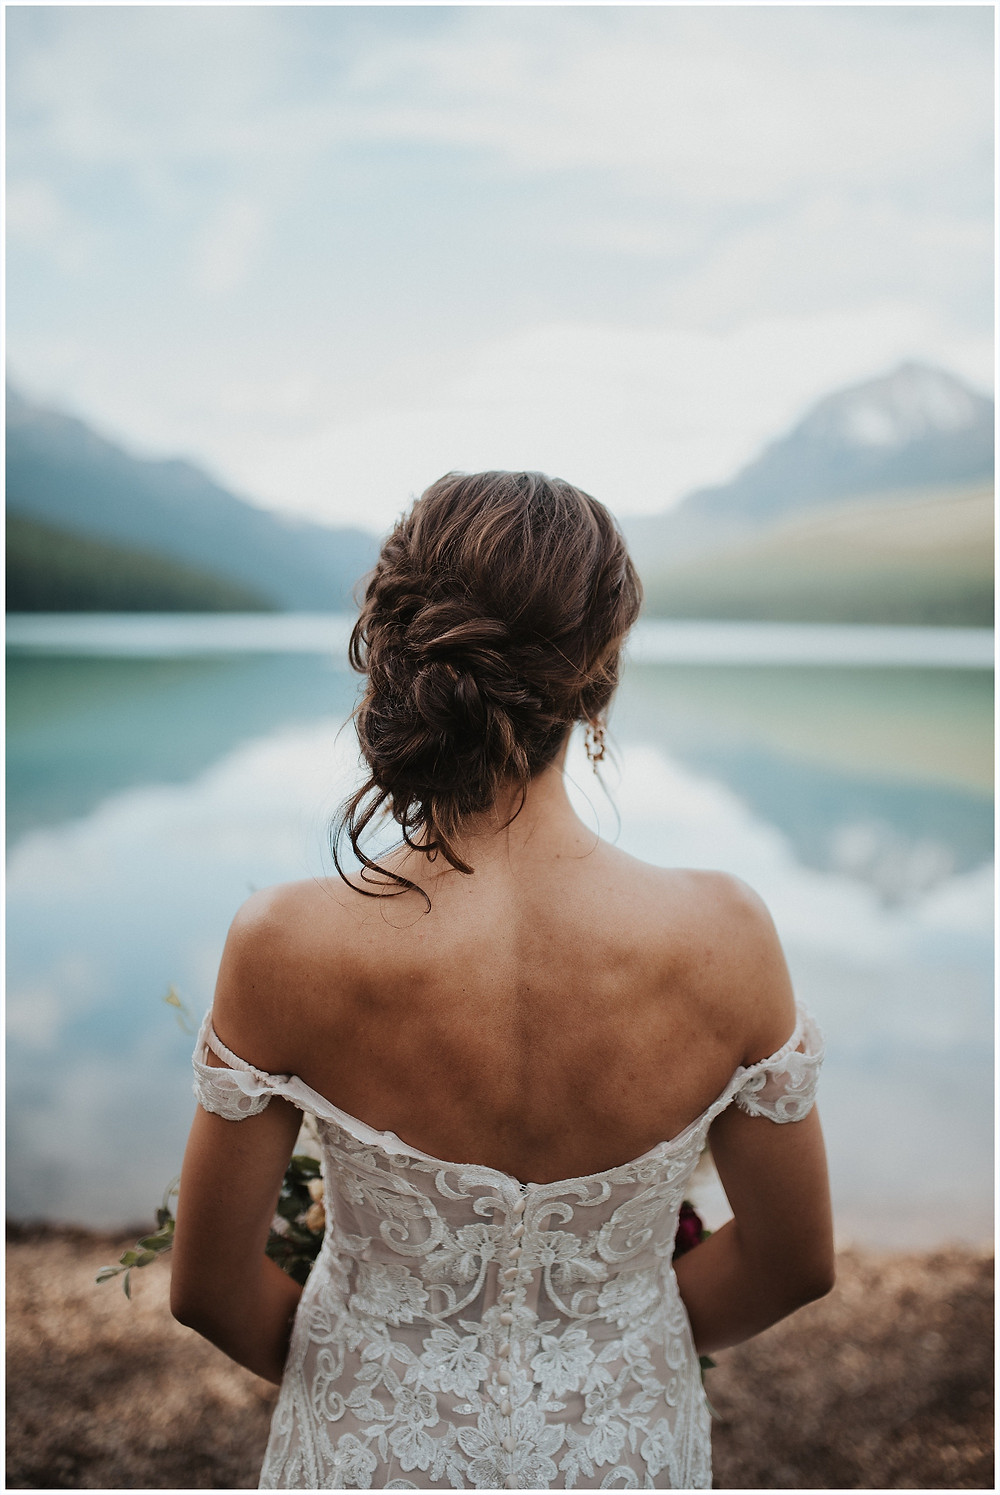 first look photos, Glacier National Park, Elegant and Romantic Styled Elopement, Katy Shay Photo, Montana Wedding and Elopement Photographer, Glacier National Park Photographer, Moody photos, glamorous wedding, Navy, maroon, coral, lace wedding dress, Bozeman photographer, Missoula photographer, Kalispell photographer, Glacier NP, Bowman Lake, styled shoot, elopement, elopement inspiration, bridal portraits, bridal hair and makeup